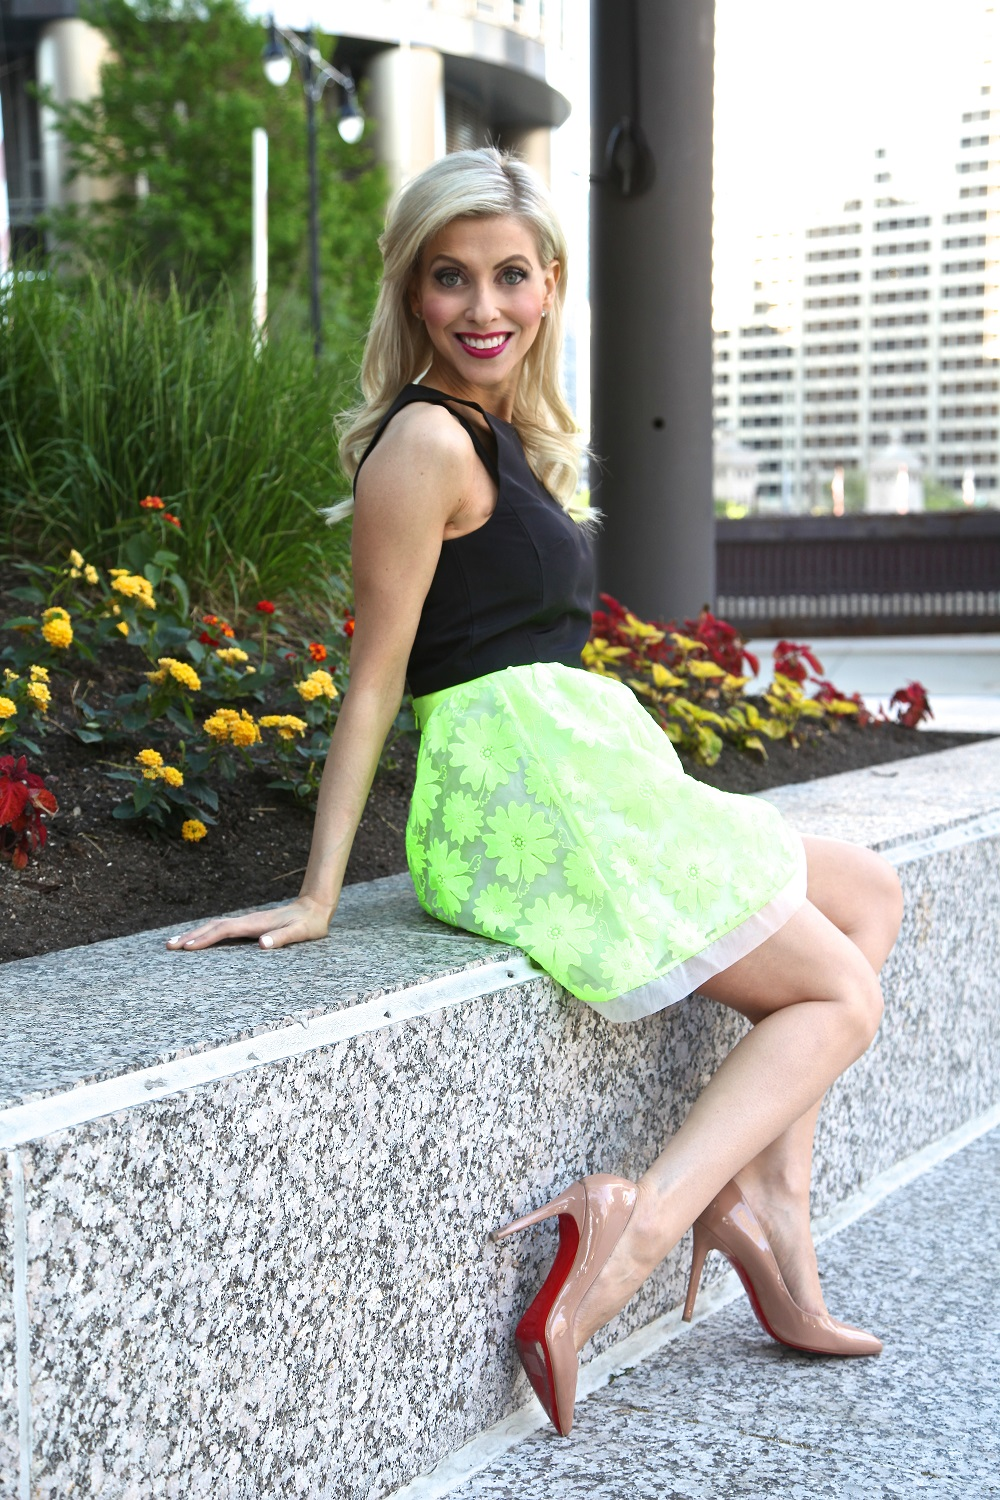 Neon Skirt, Jennifer Lane